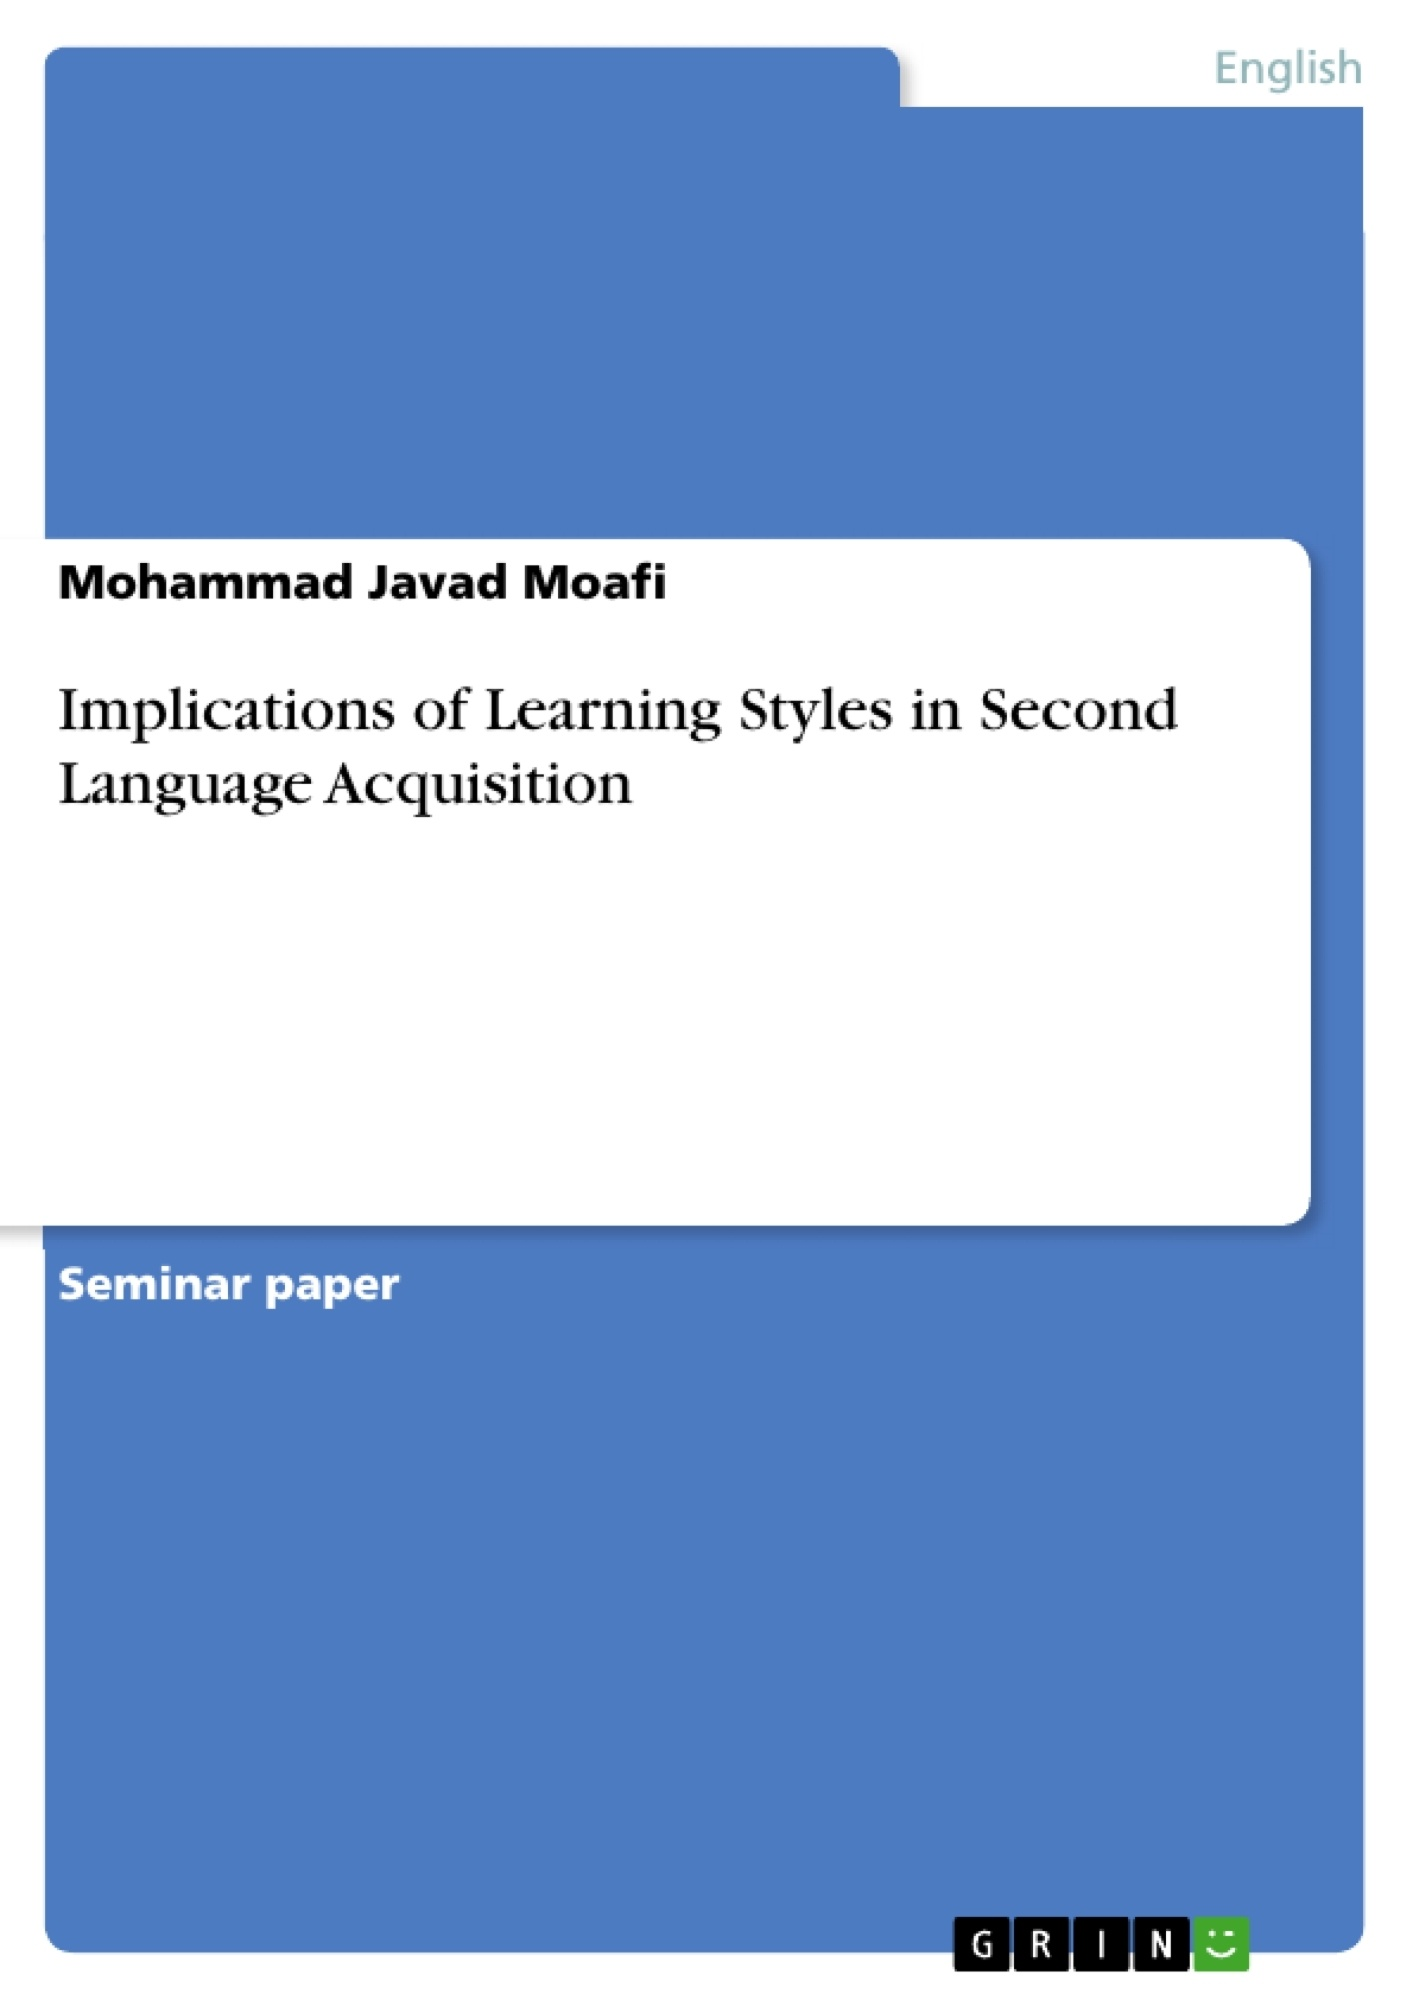 Title: Implications of Learning Styles in Second Language Acquisition